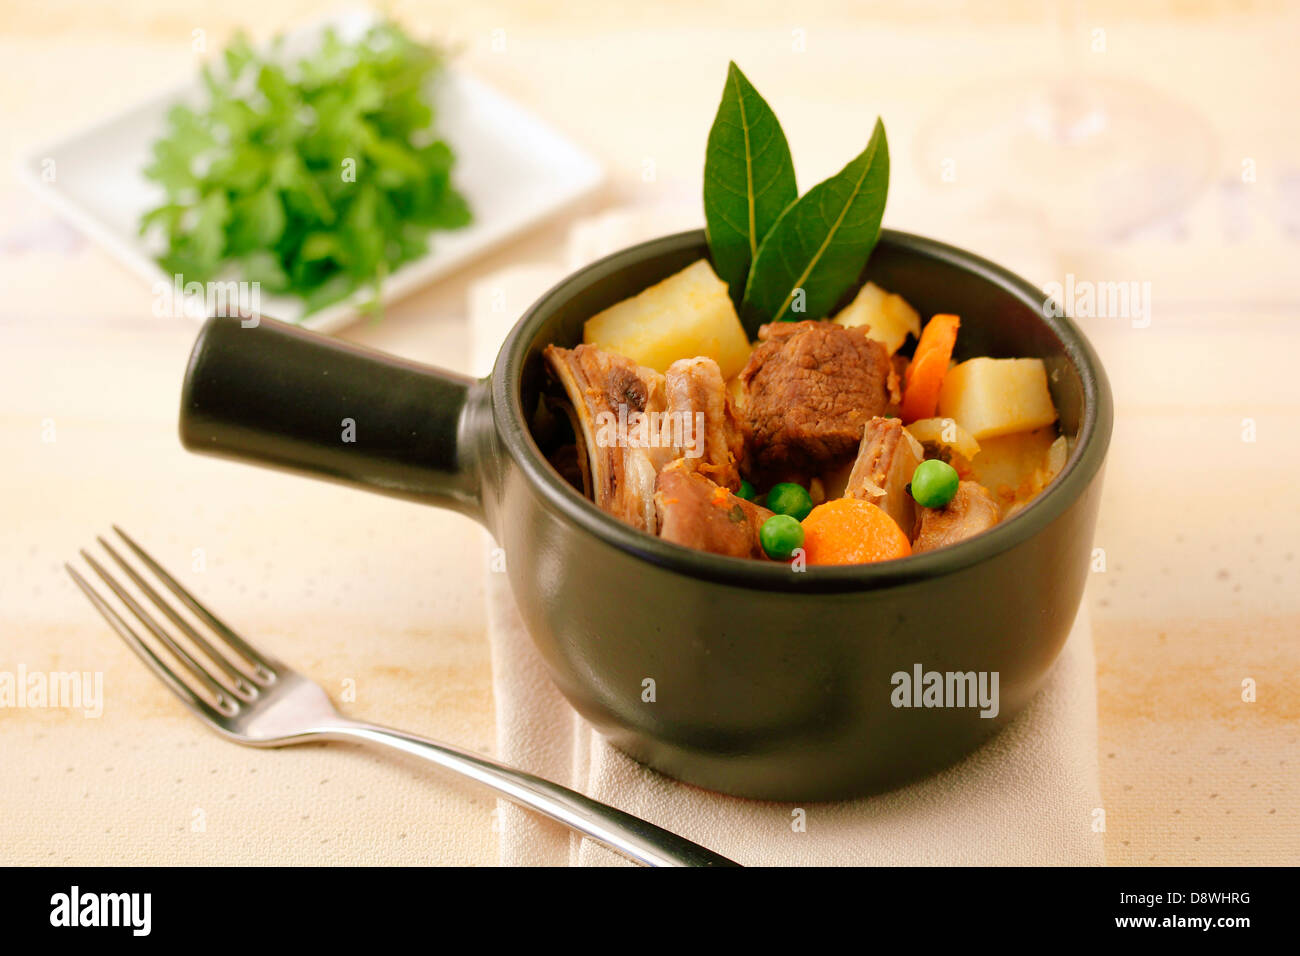 Stewed lamb with vegetables. Recipe available. Stock Photo